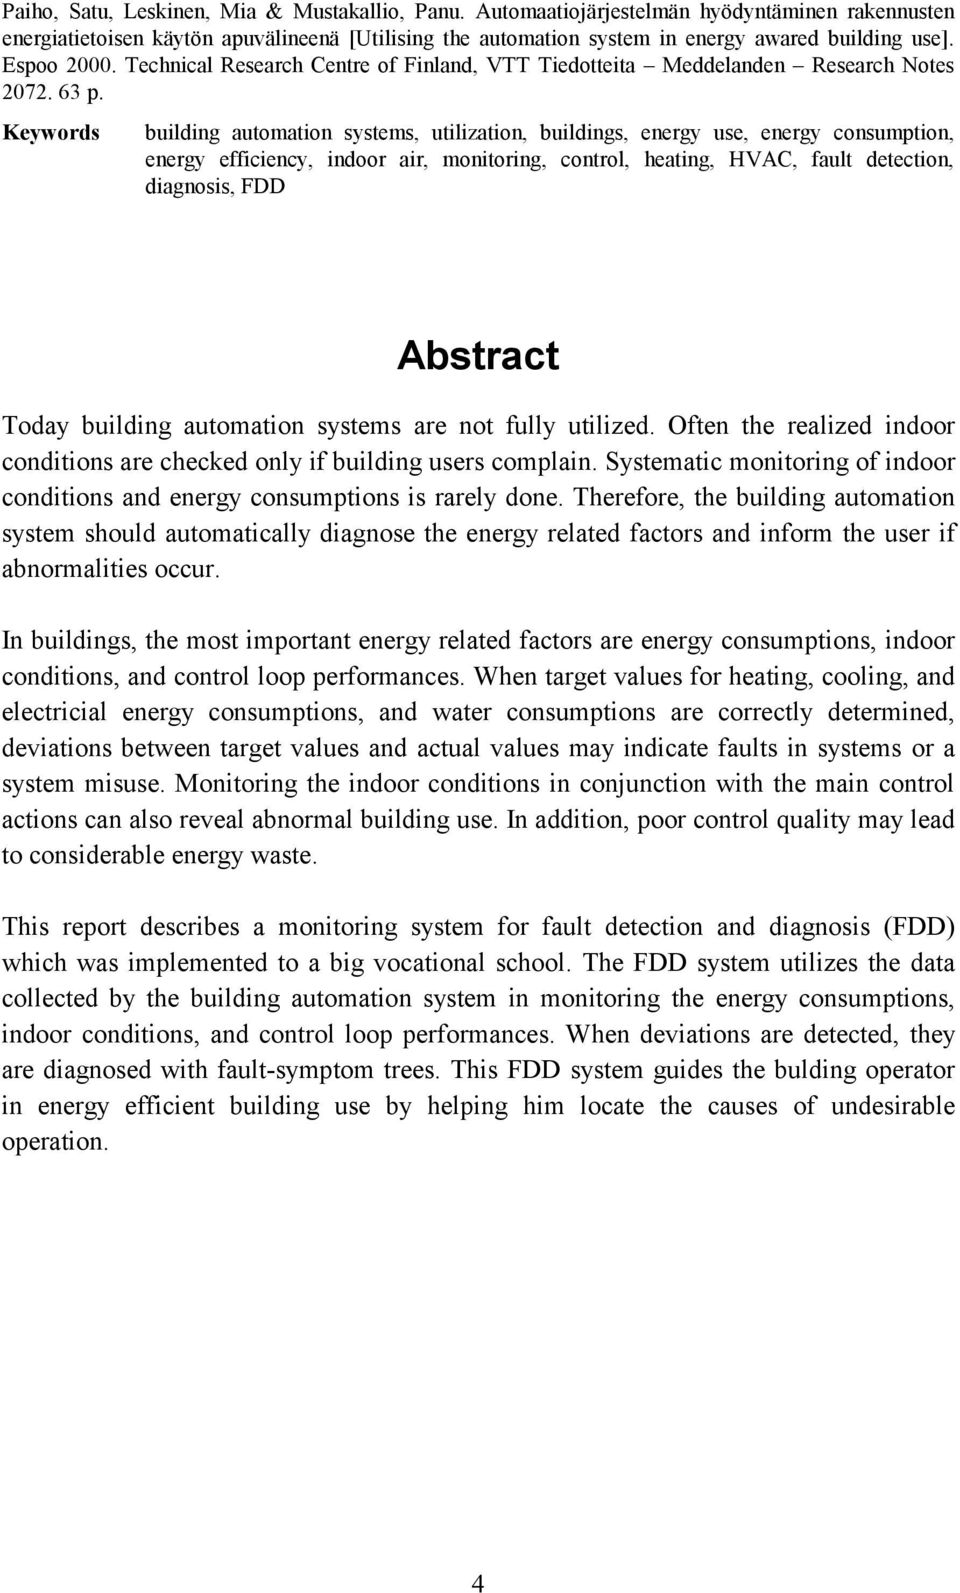 Keywords building automation systems, utilization, buildings, energy use, energy consumption, energy efficiency, indoor air, monitoring, control, heating, HVAC, fault detection, diagnosis, FDD